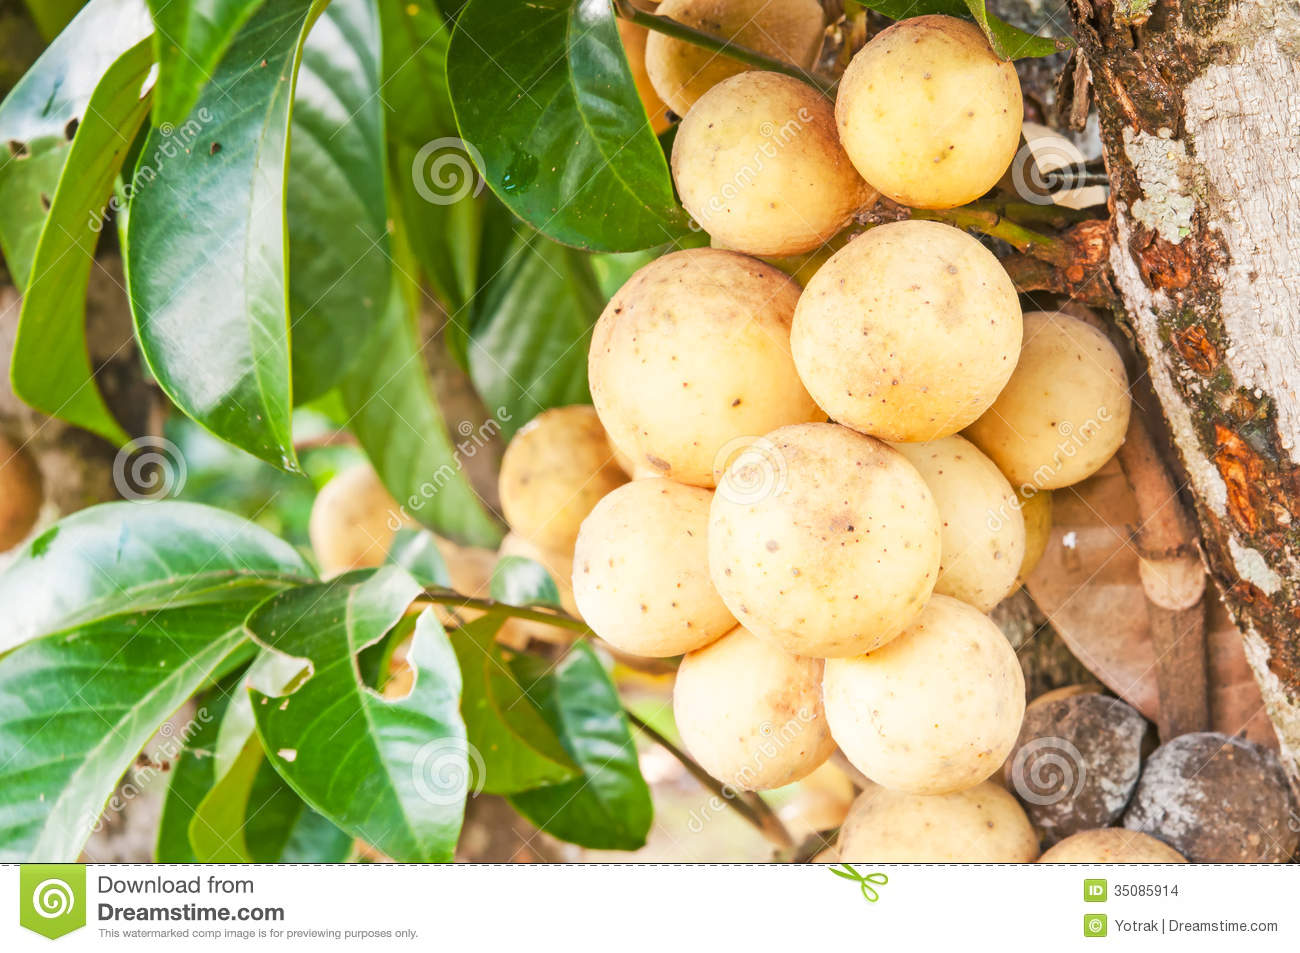 Wollongong Tropical Fruit Stock Images - Image: 35085914